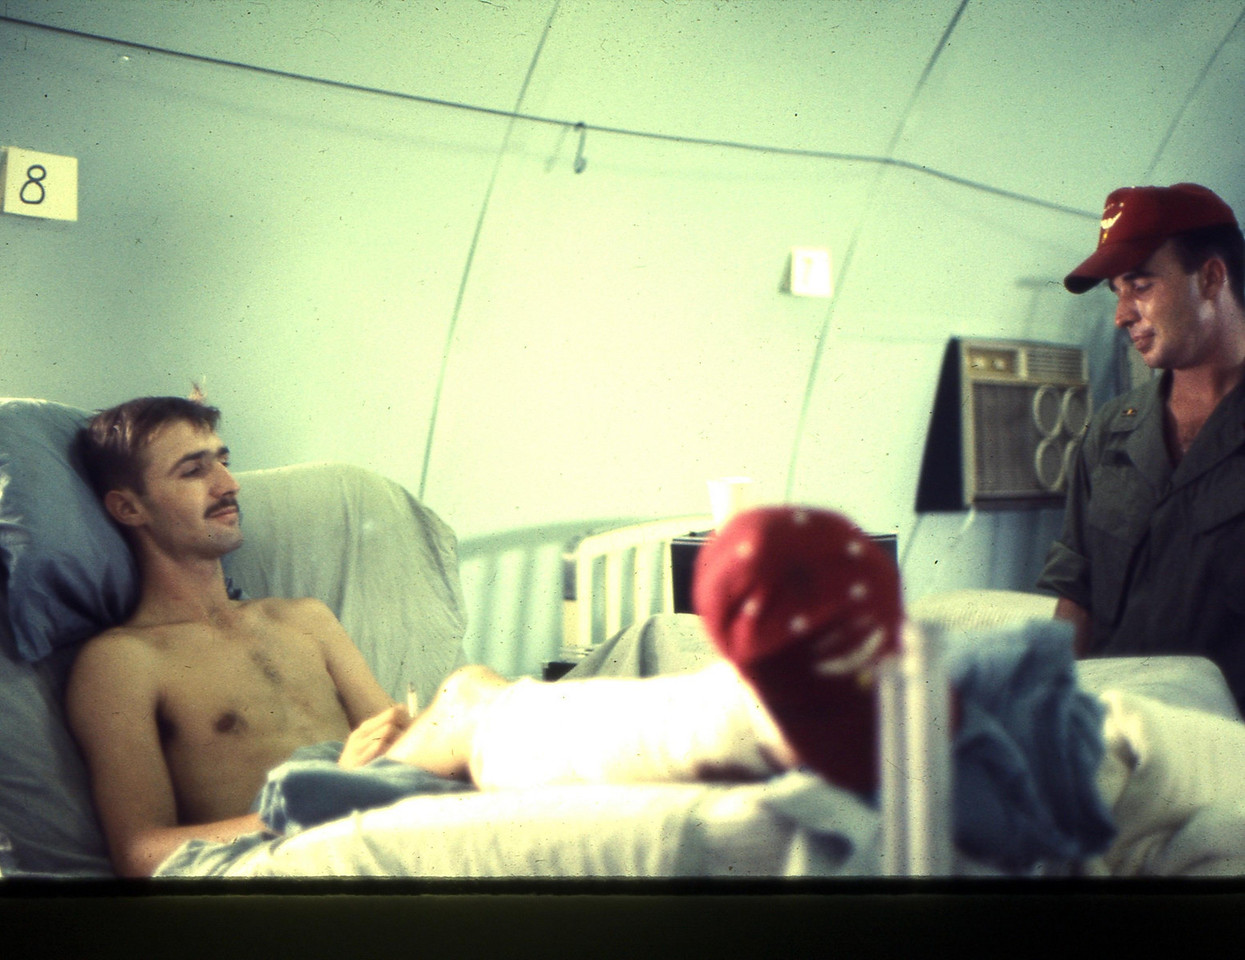 GUYS IN RED HATS WERE OUR HEROES